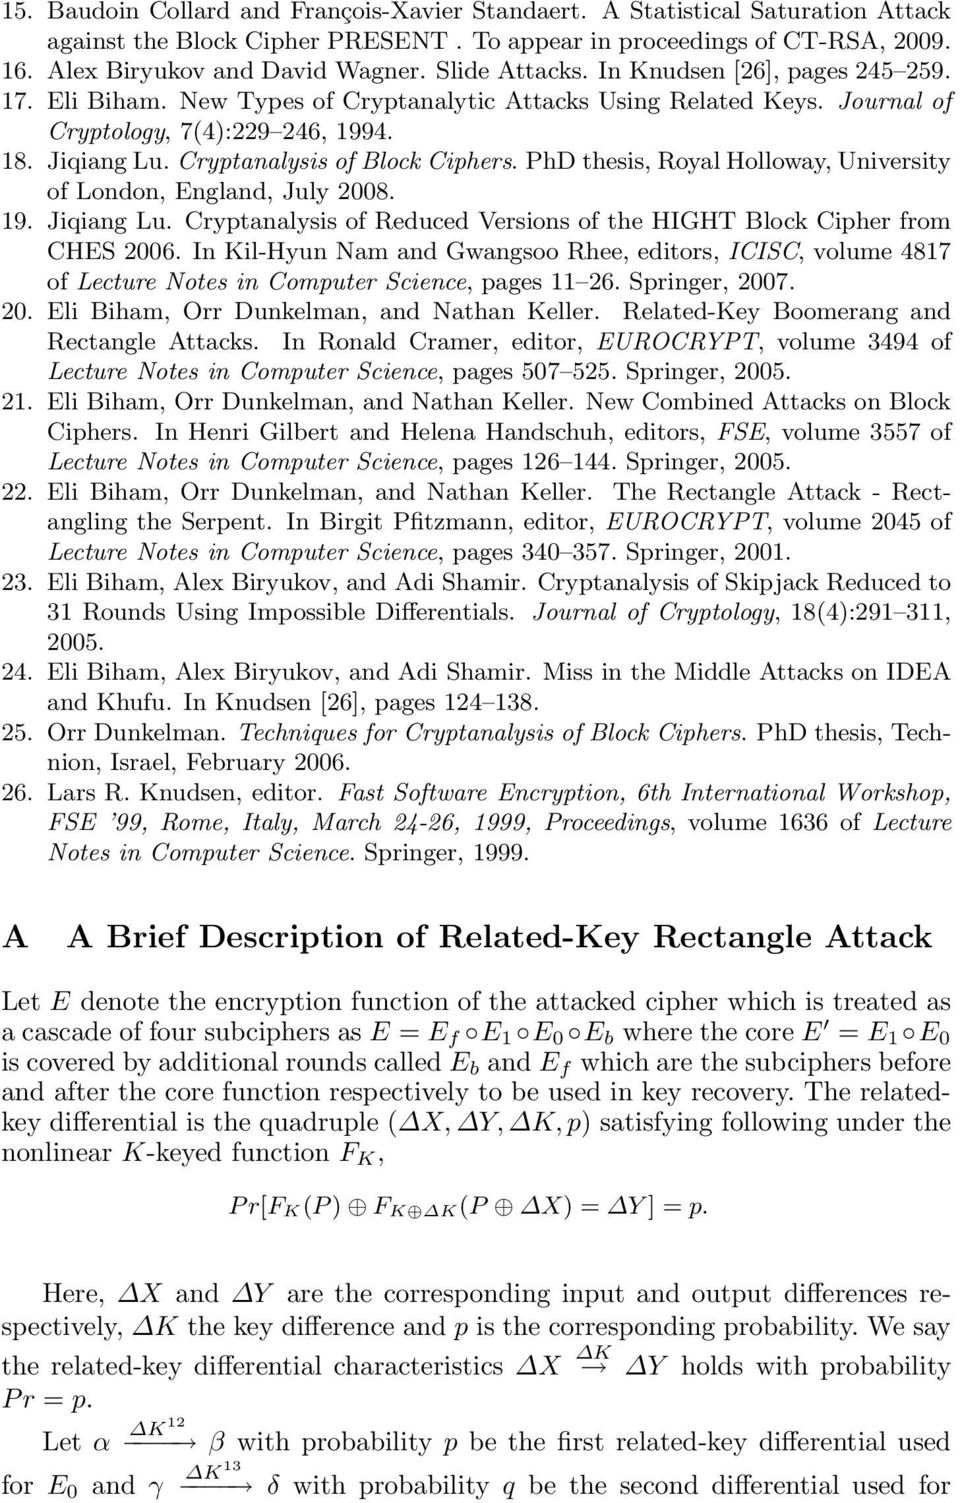 Cryptanalysis of Block Ciphers. PhD thesis, Royal Holloway, University of London, England, July 2008. 19. Jiqiang Lu. Cryptanalysis of Reduced Versions of the HIGHT Block Cipher from CHES 2006.